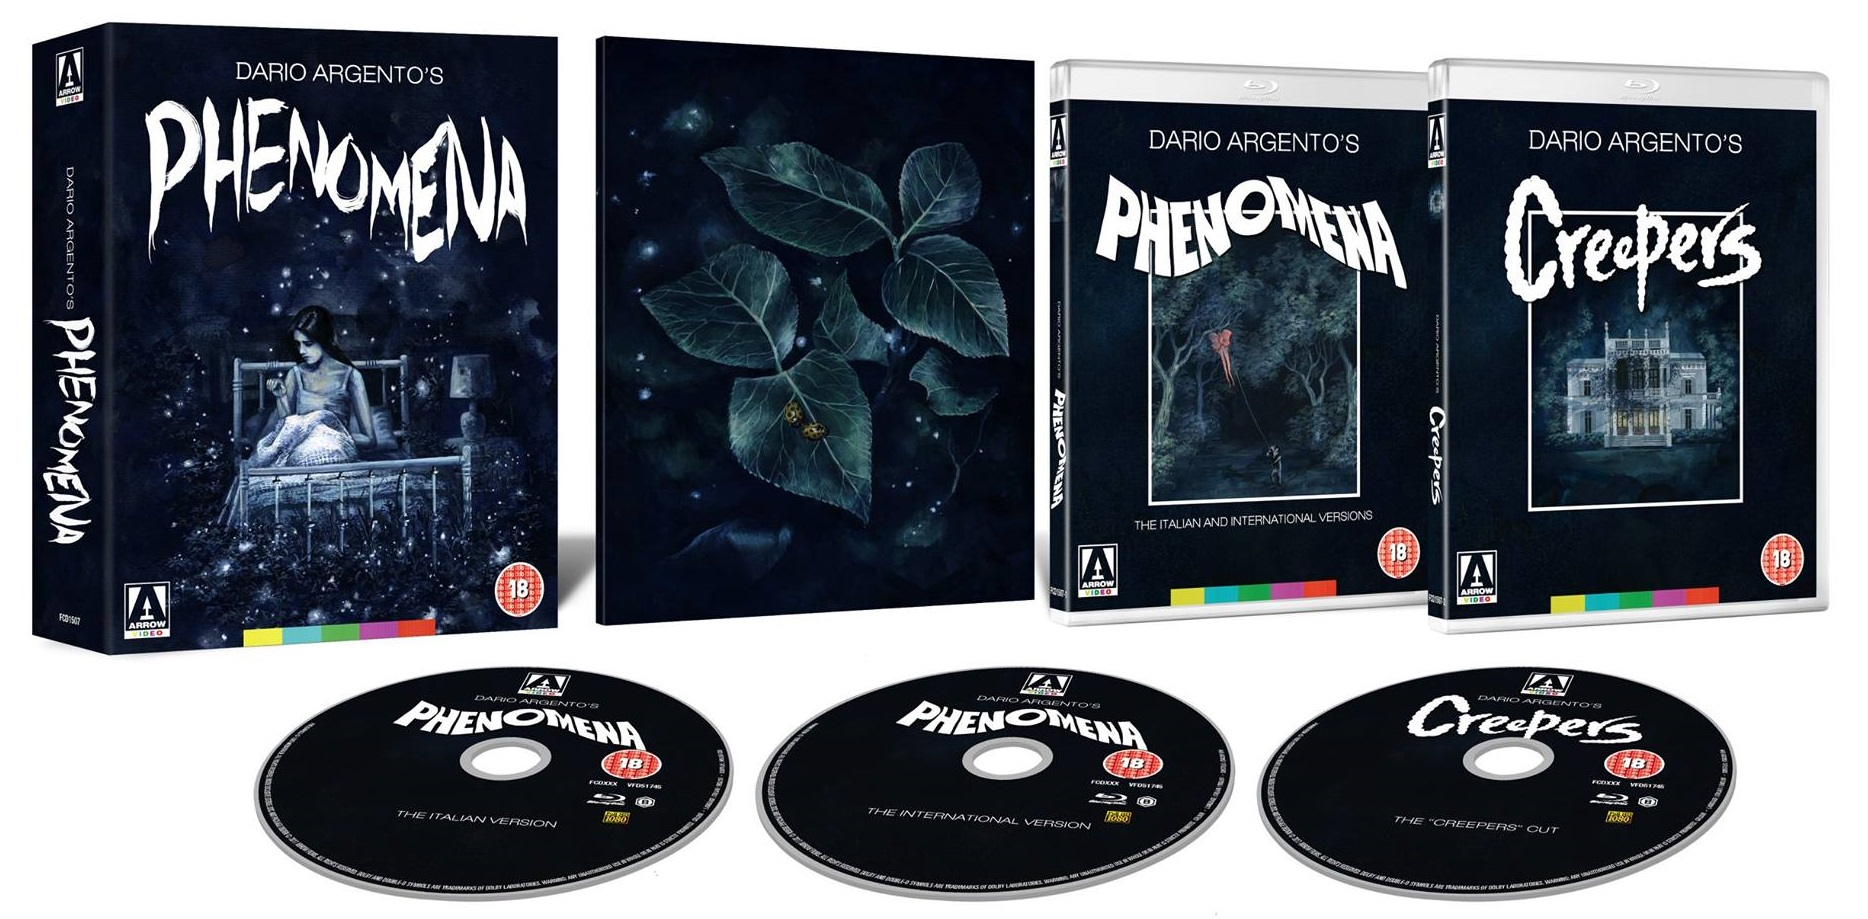 Phenomena Limited Edition UK Blu-Ray